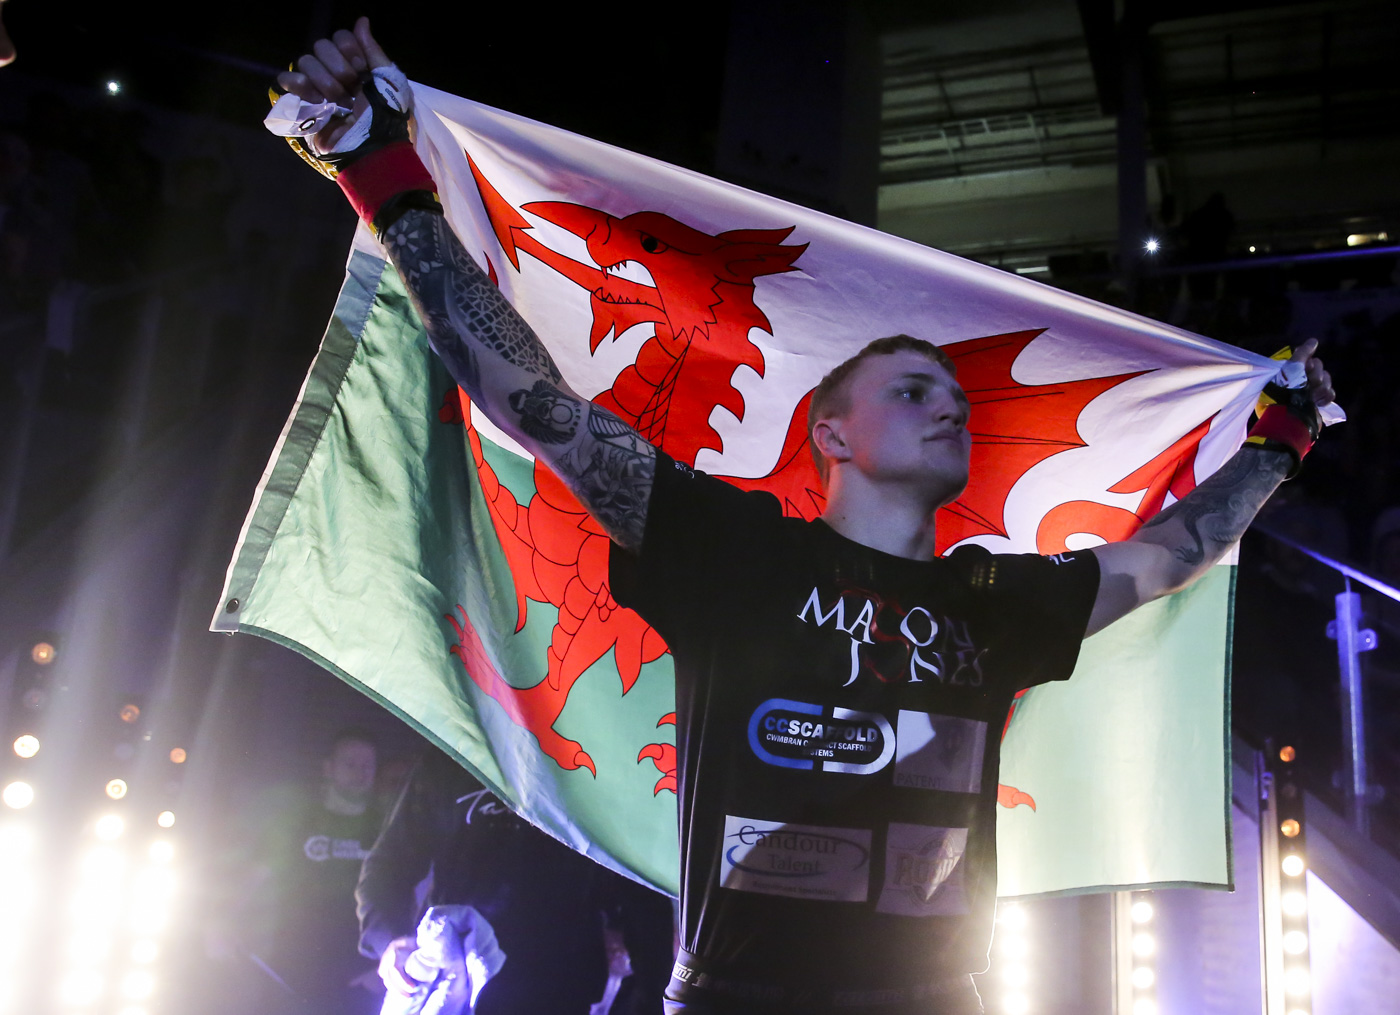 Rising prospect Mason Jones will fly the flag for Wales once again on April 27th